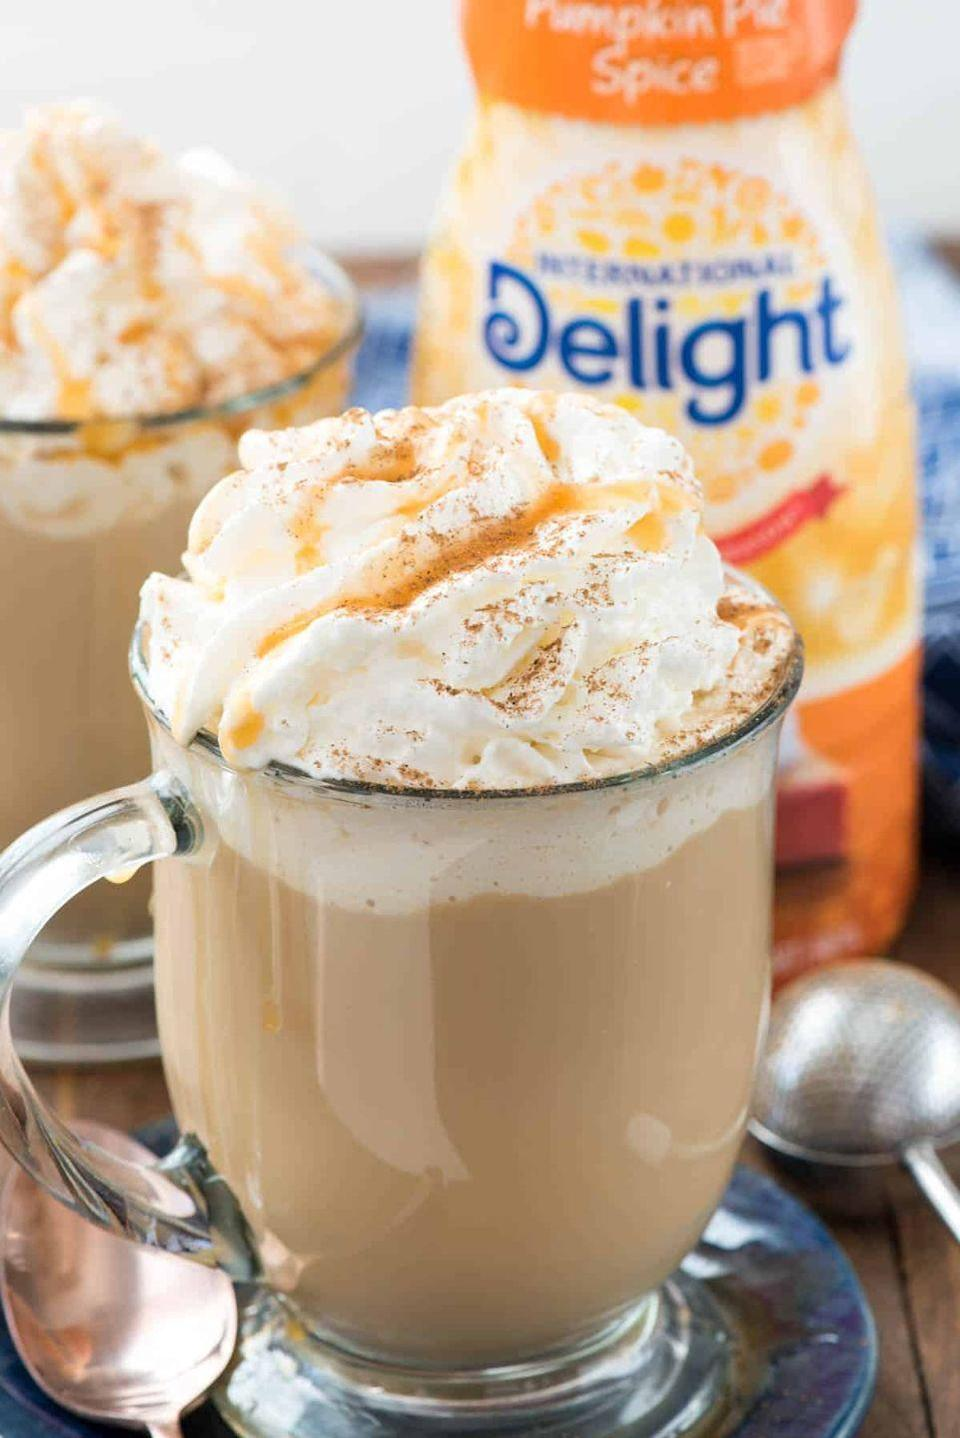 """<p>You've never had a PSL like this before! It's spiked with cinnamon whiskey and vanilla vodka to complement that lovely pumpkin flavor.</p><p><strong>Get the recipe at <a href=""""https://www.crazyforcrust.com/spiked-pumpkin-spice-latte/"""" rel=""""nofollow noopener"""" target=""""_blank"""" data-ylk=""""slk:Crazy for Crust"""" class=""""link rapid-noclick-resp"""">Crazy for Crust</a>.</strong></p><p><strong><a class=""""link rapid-noclick-resp"""" href=""""https://go.redirectingat.com?id=74968X1596630&url=https%3A%2F%2Fwww.walmart.com%2Fbrowse%2Fhome%2Fcoffee-mugs%2F4044_623679_639999_3148543_9383607%3Ffacet%3Dbrand%253AThe%2BPioneer%2BWoman&sref=https%3A%2F%2Fwww.thepioneerwoman.com%2Ffood-cooking%2Fmeals-menus%2Fg33510531%2Ffall-cocktail-recipes%2F"""" rel=""""nofollow noopener"""" target=""""_blank"""" data-ylk=""""slk:SHOP MUGS"""">SHOP MUGS</a><br></strong></p>"""